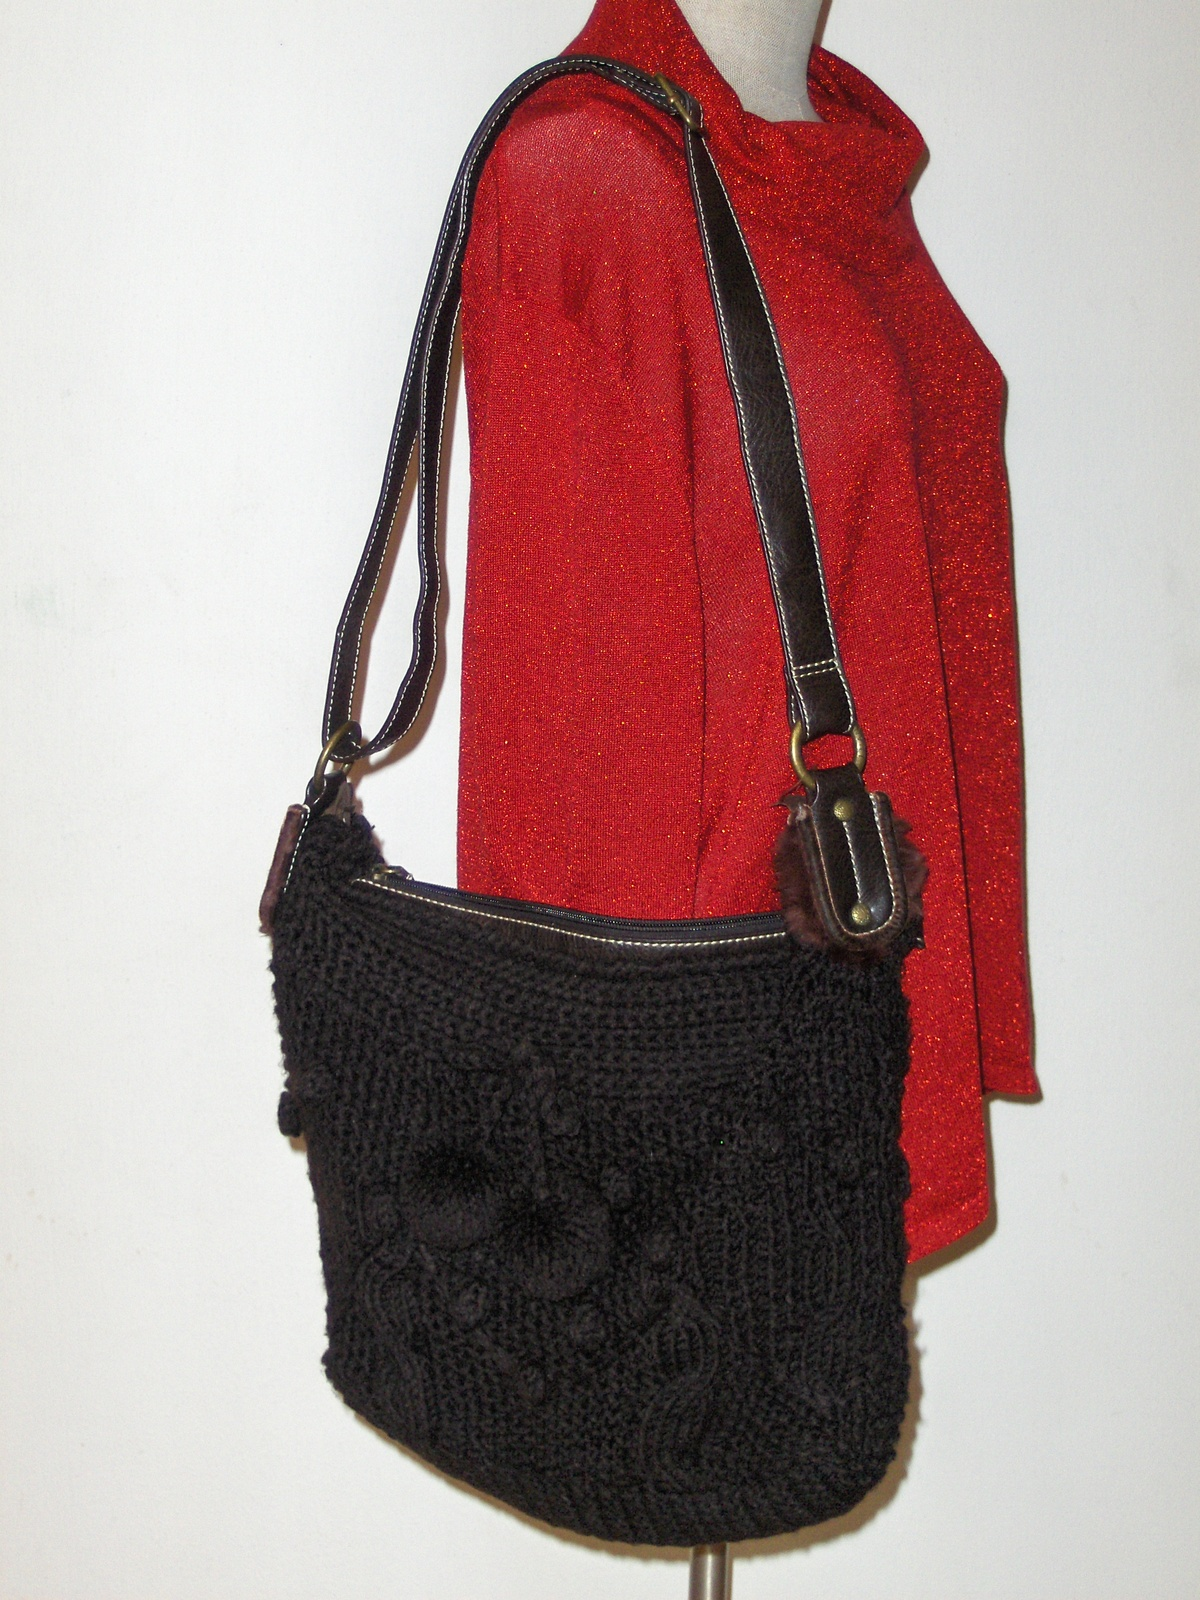 Crochet Hobo Bag : Luana Sweater Hobo Bag Crochet Shoulder Bag - Handbags & Purses